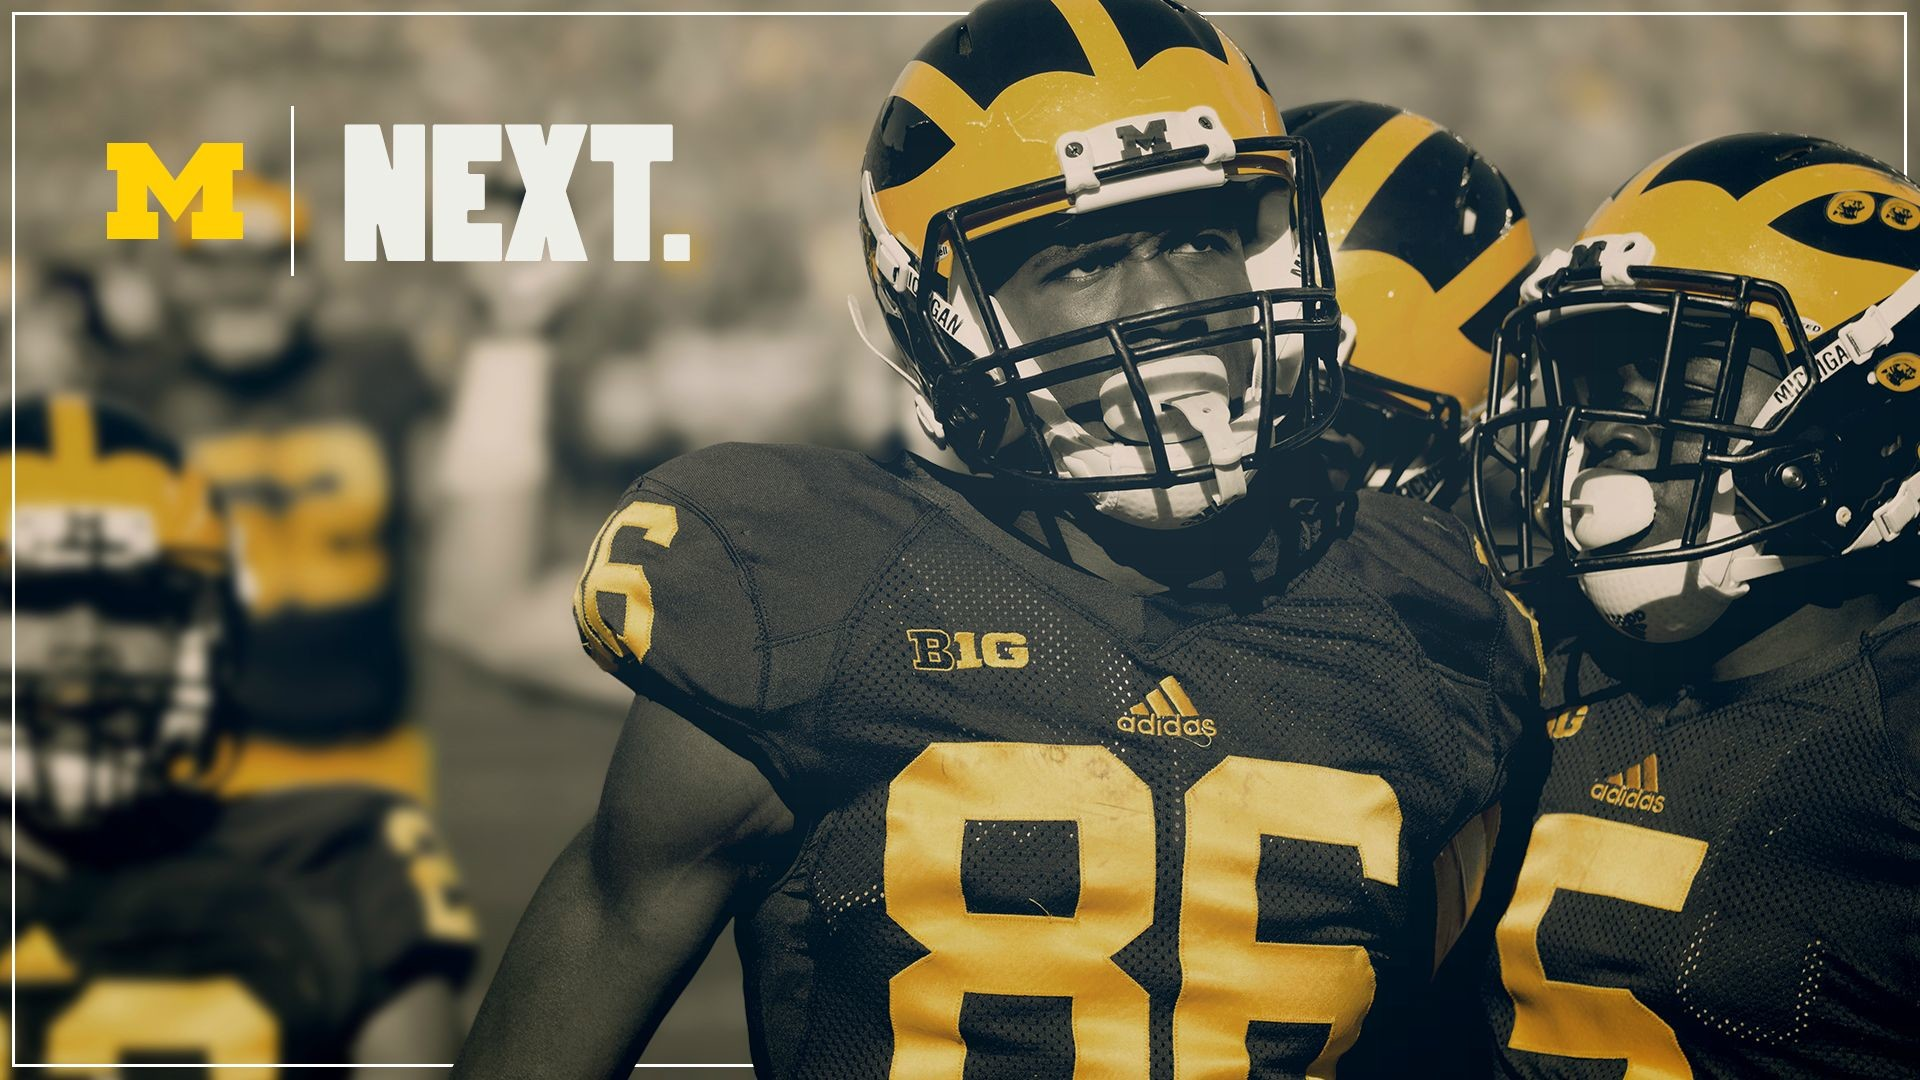 Michigan Wolverines Football Wallpapers Group 1920×1080 Michigan Wolverines  Football Wallpapers (34 Wallpapers)